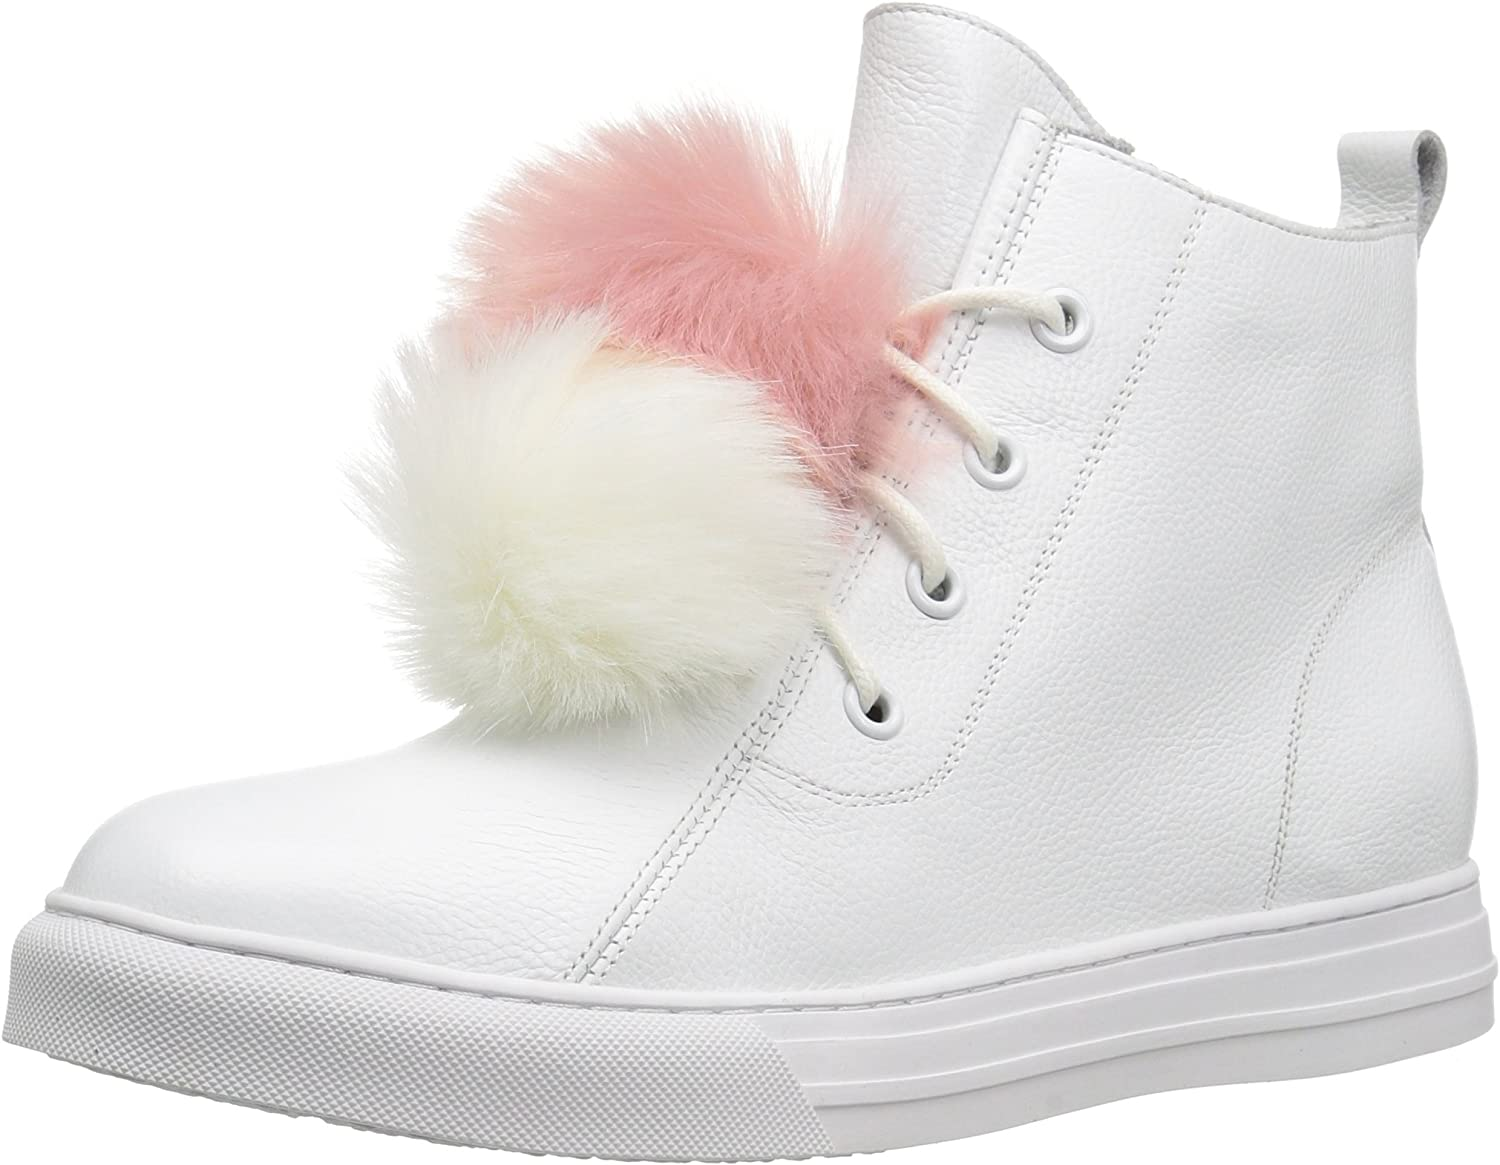 Dirty Laundry Women's Fur Ever Leather Fashion Sneakers